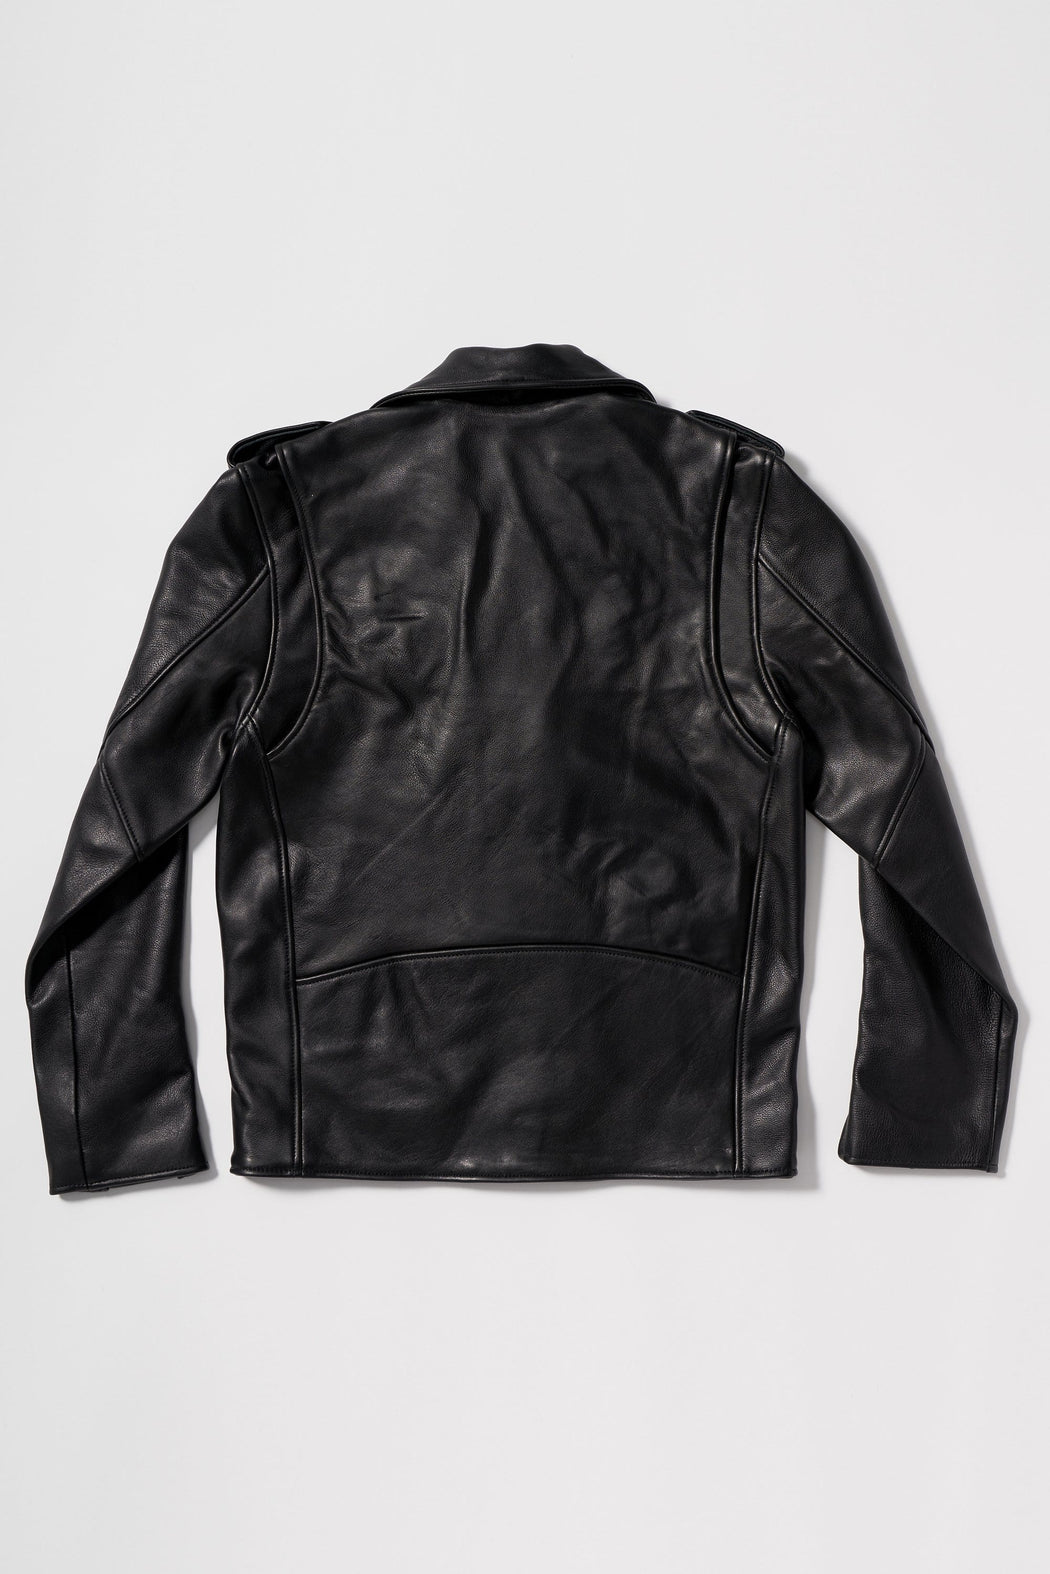 MENS EASY RIDER JACKET - CUSTOM